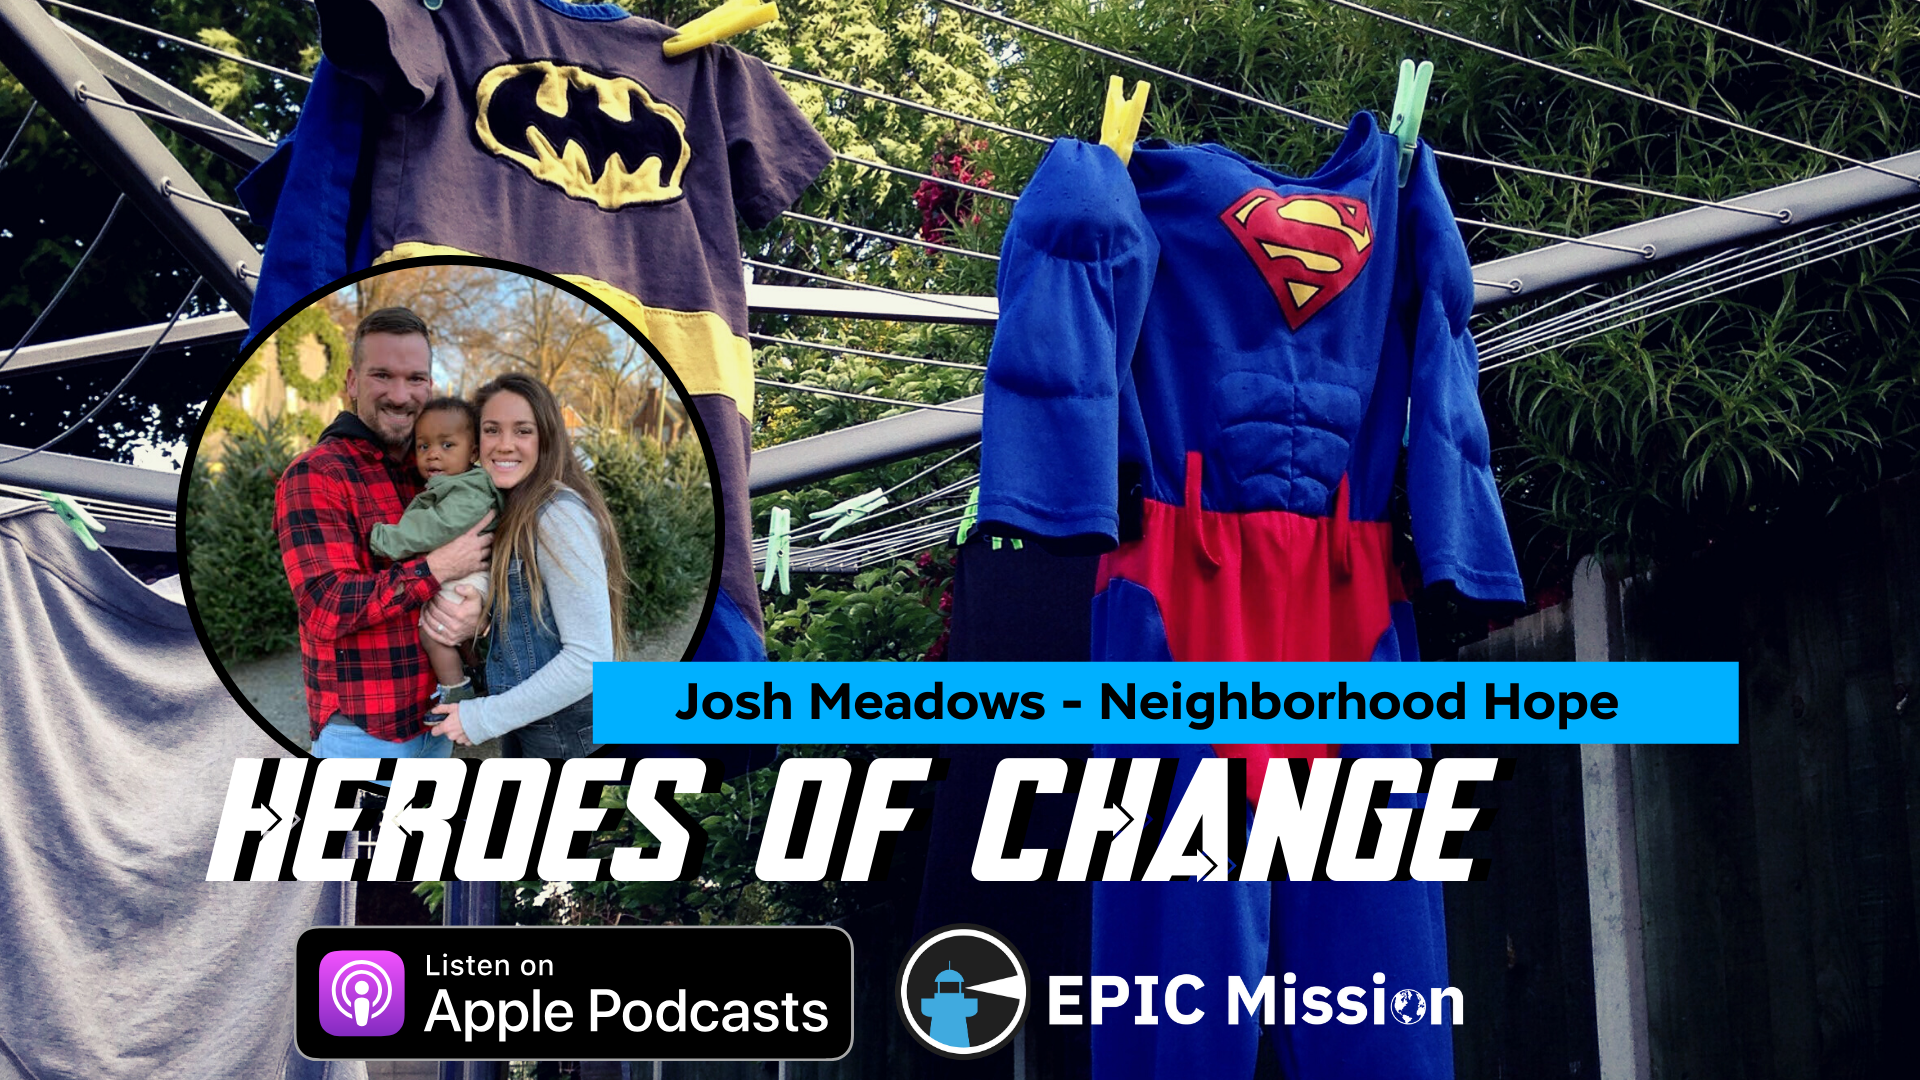 Heroes of Change: Josh Meadows of Neighborhood Hope - EPiC Mission